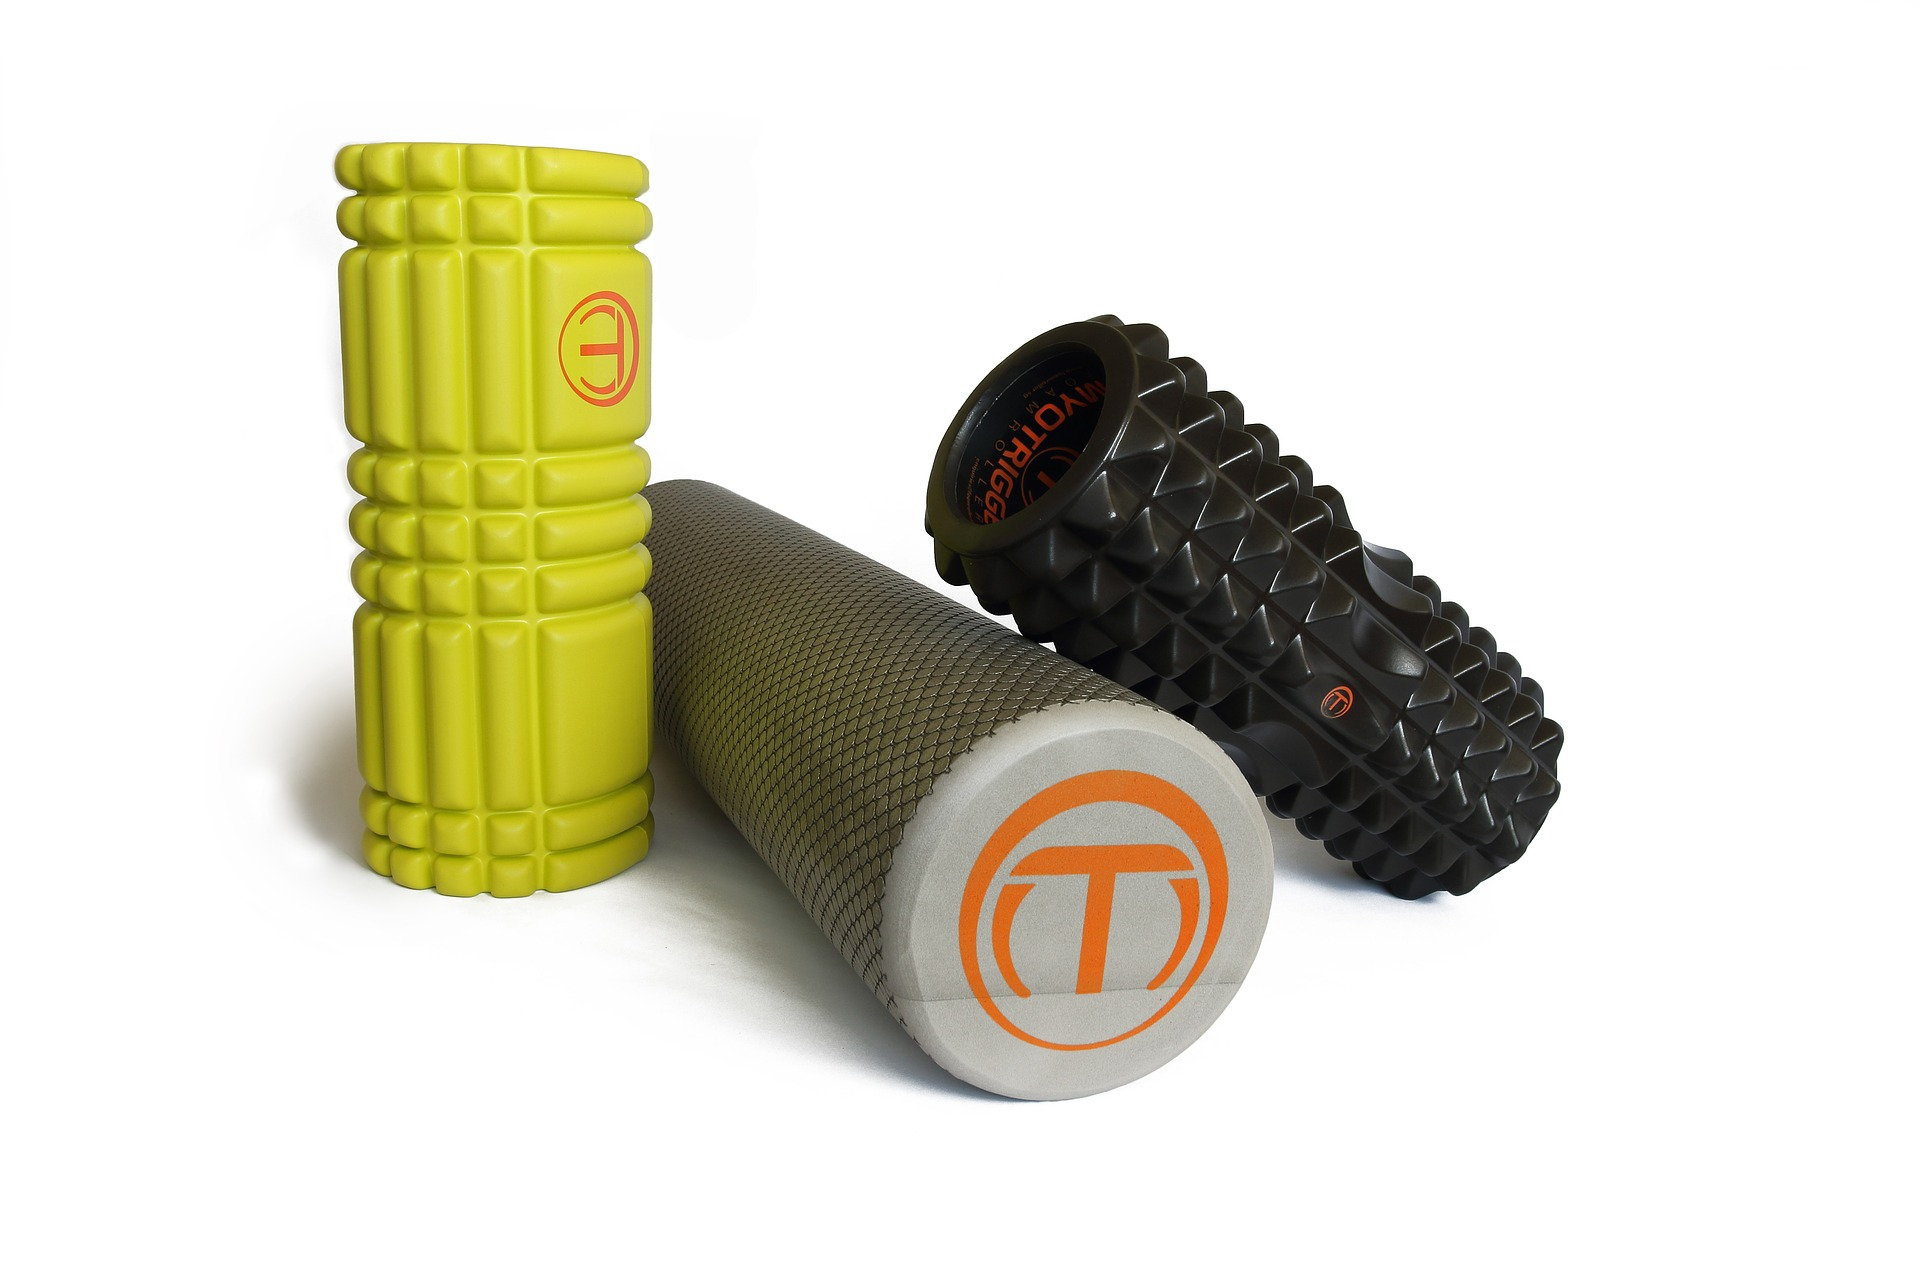 The Best Foam Roller for Back Pain